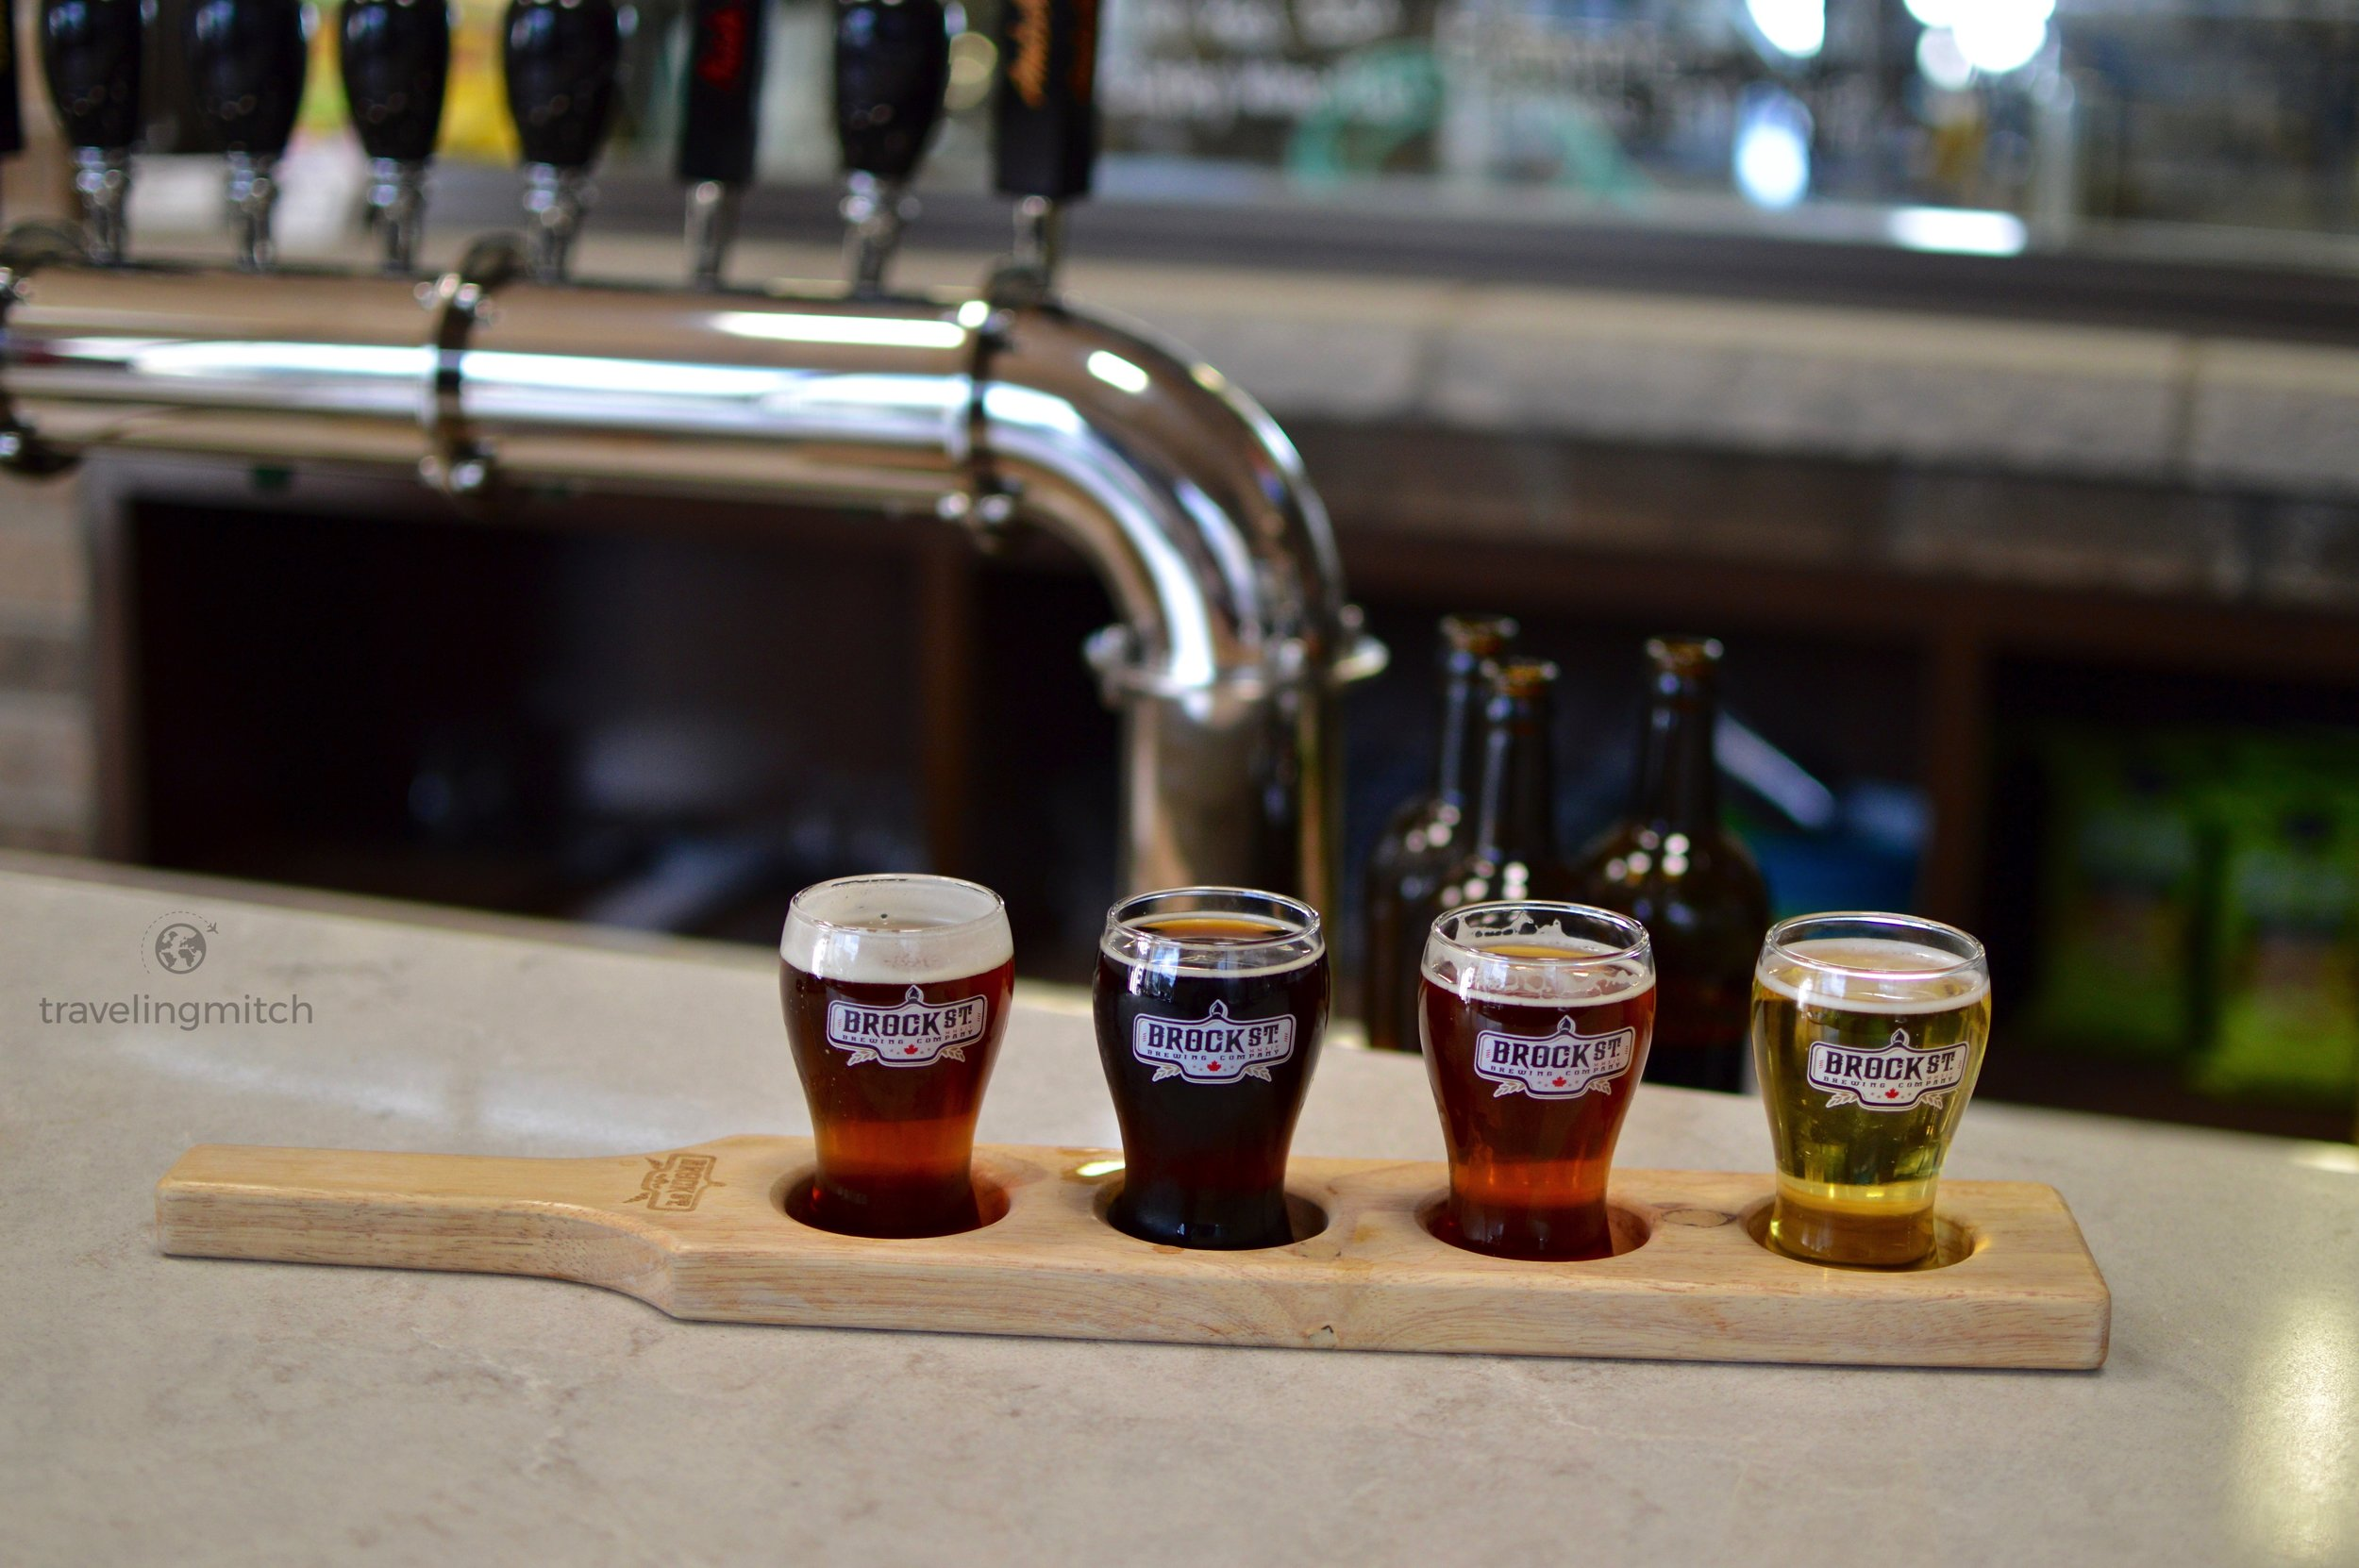 Brock St. Brewing Co. in Whitby, Ontario. From right to left - blonde, amber, Irish red, and pineapple express IPA.